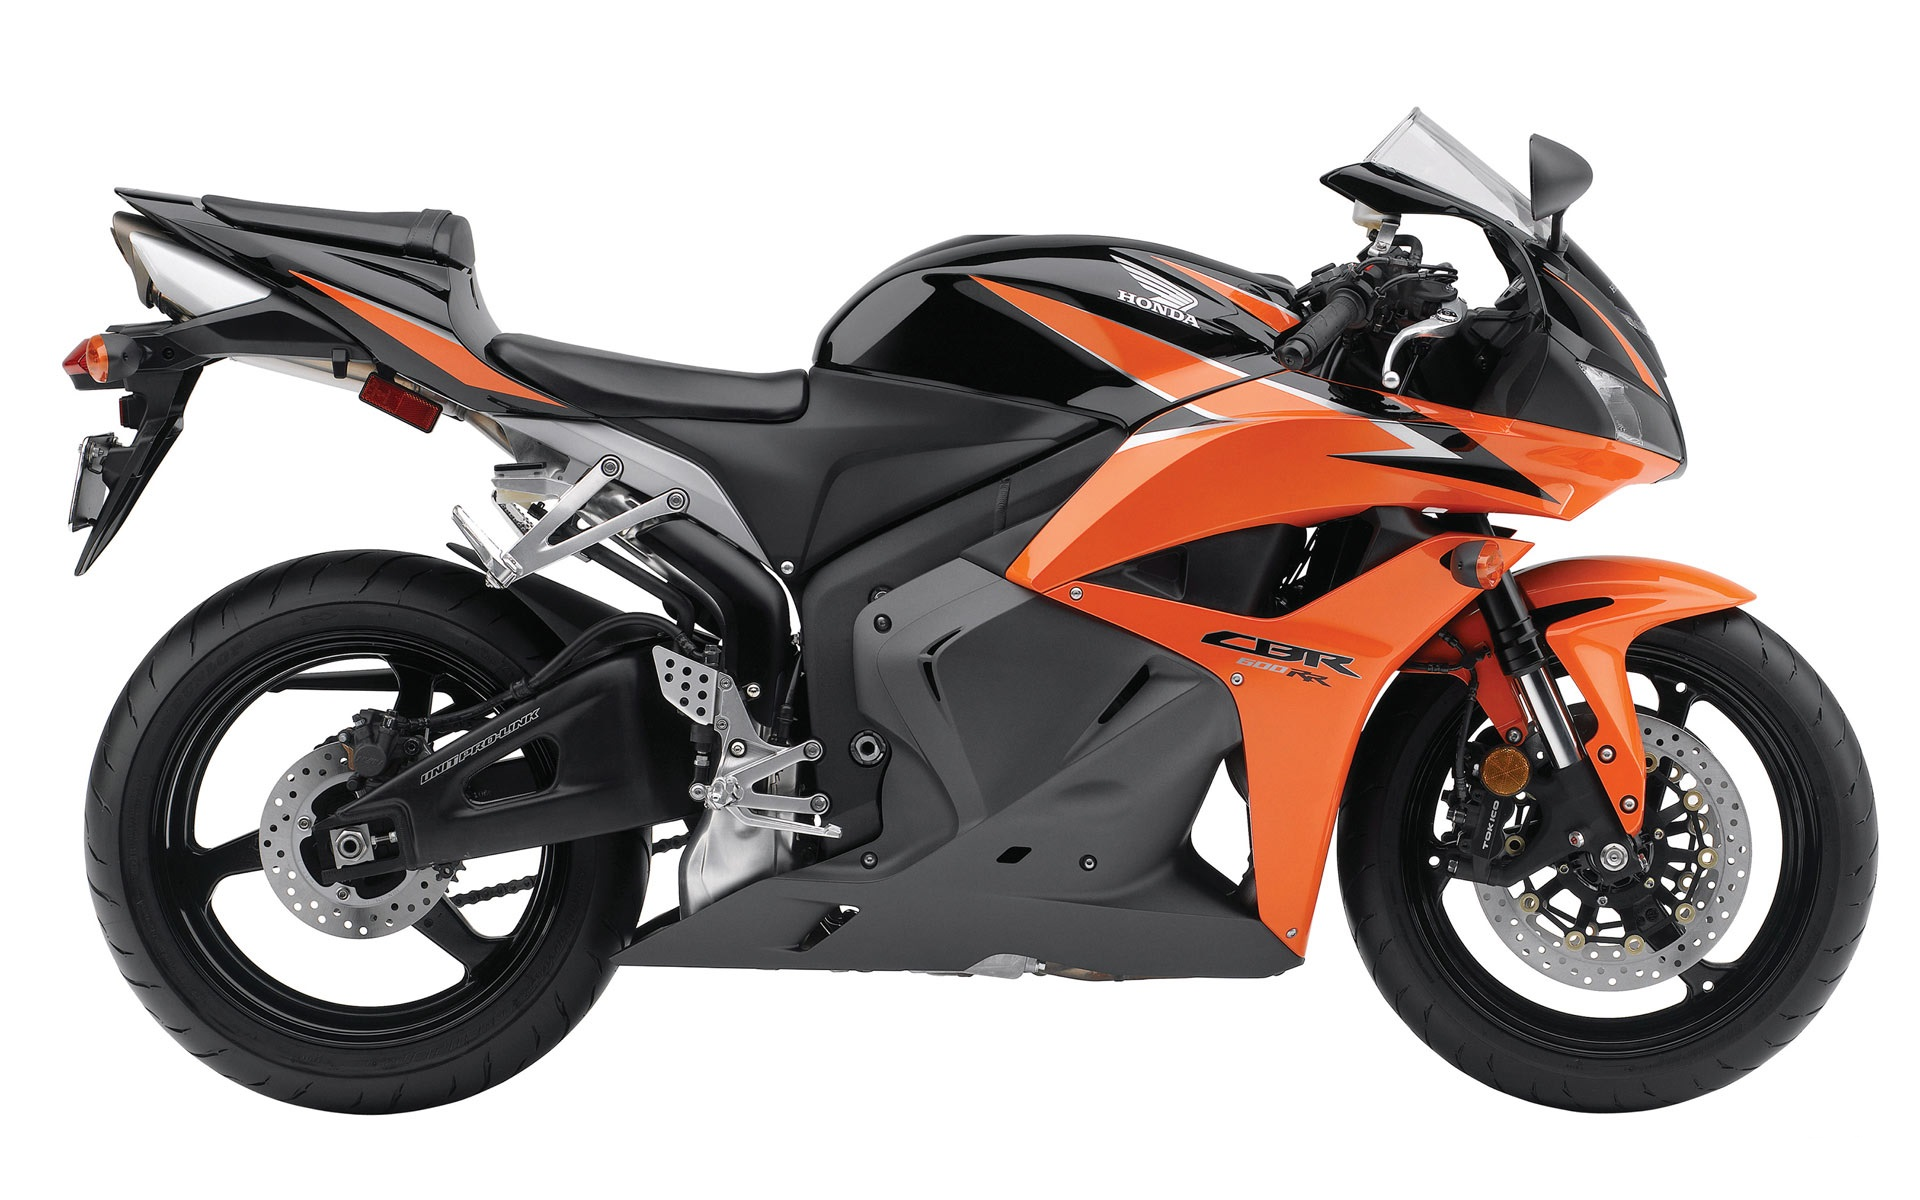 Honda CBR600rr Wallpapers & Pictures